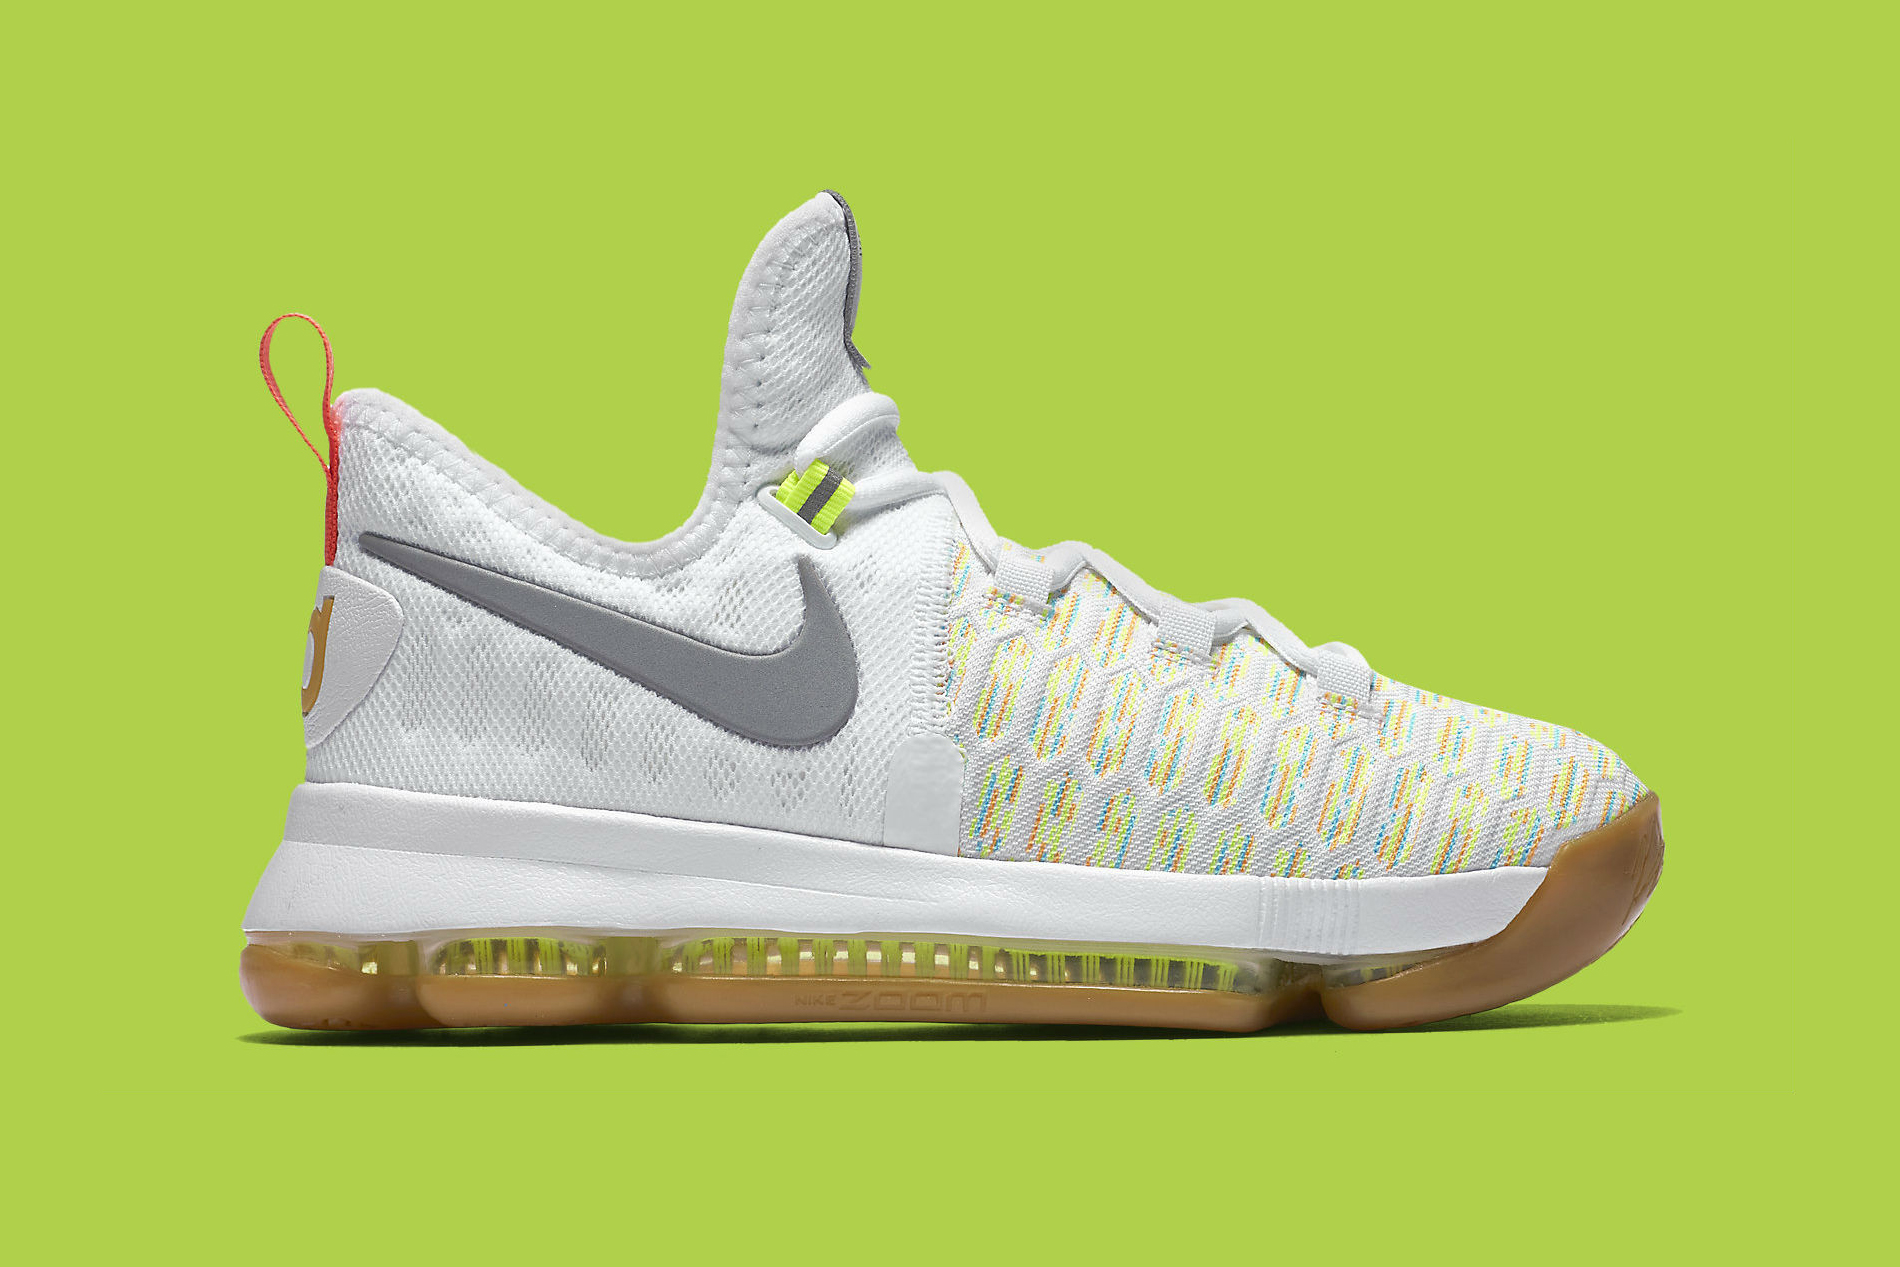 newest fd98c 79569 kd 9 easter